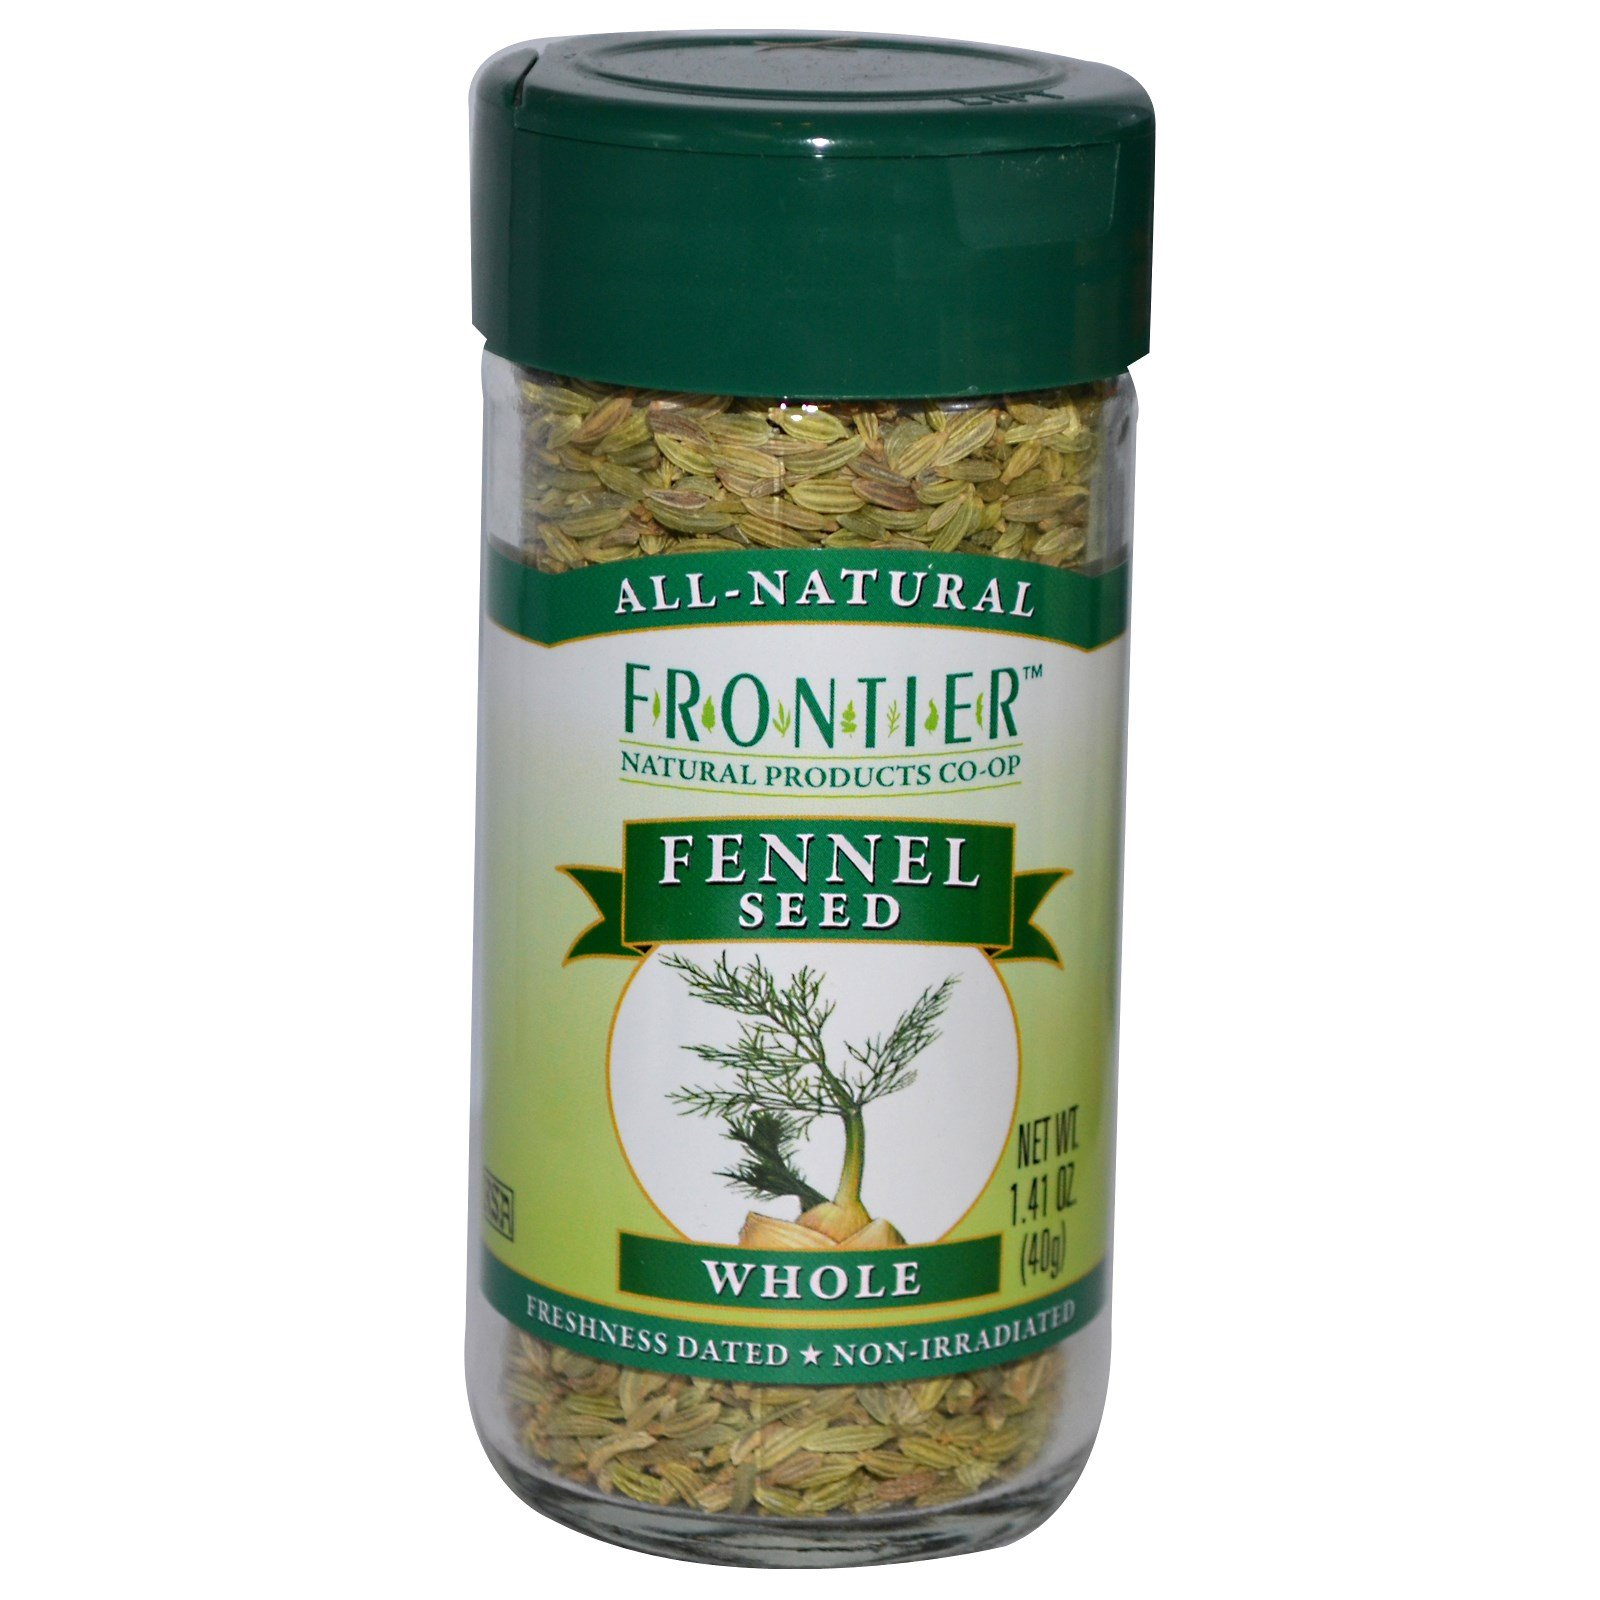 Frontier Natural Products, Fennel Seed, Whole, 1.41 oz (40 g) - 3PC